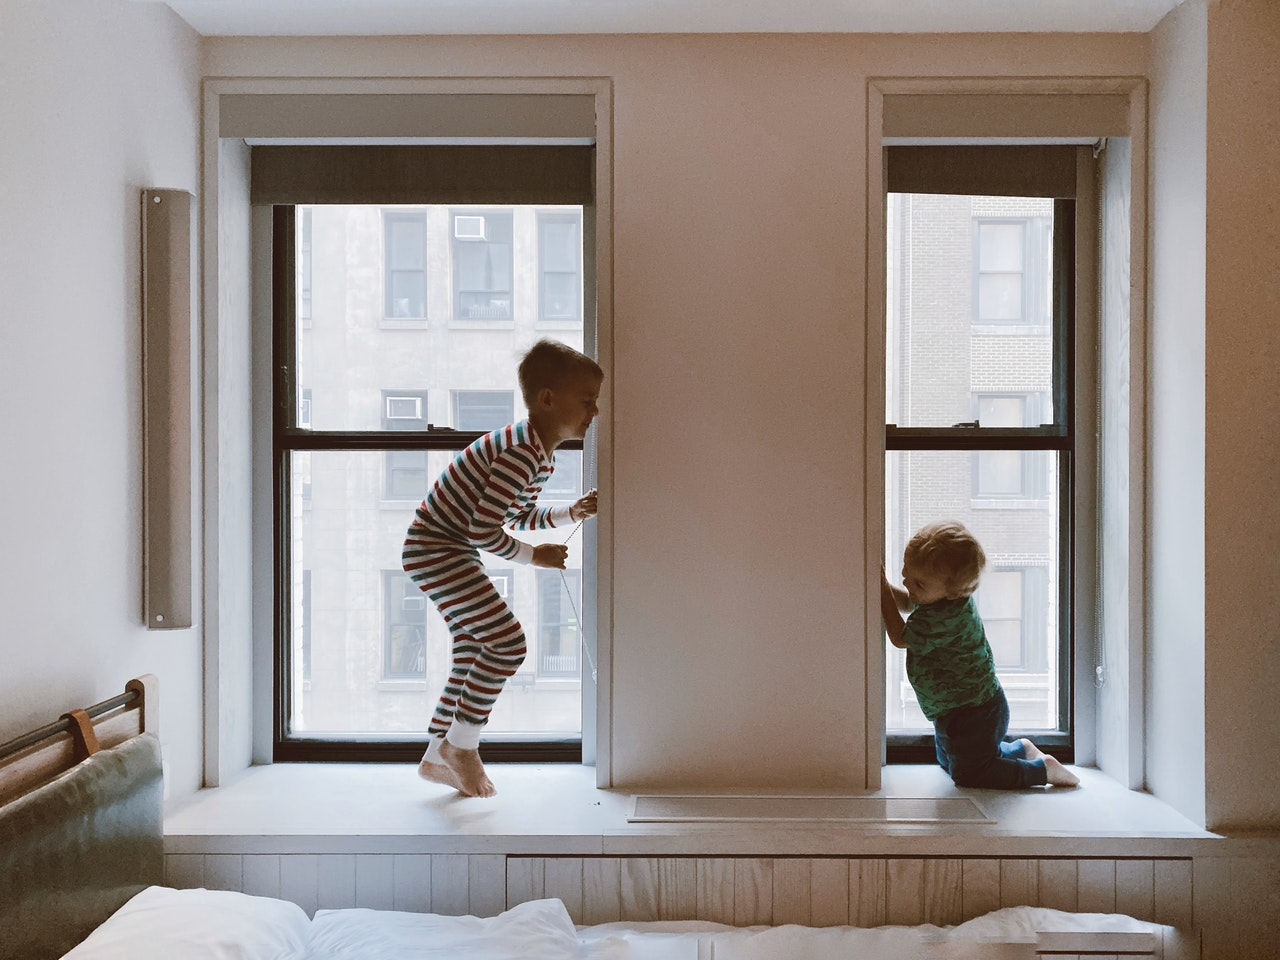 Two kids playing hide and seek